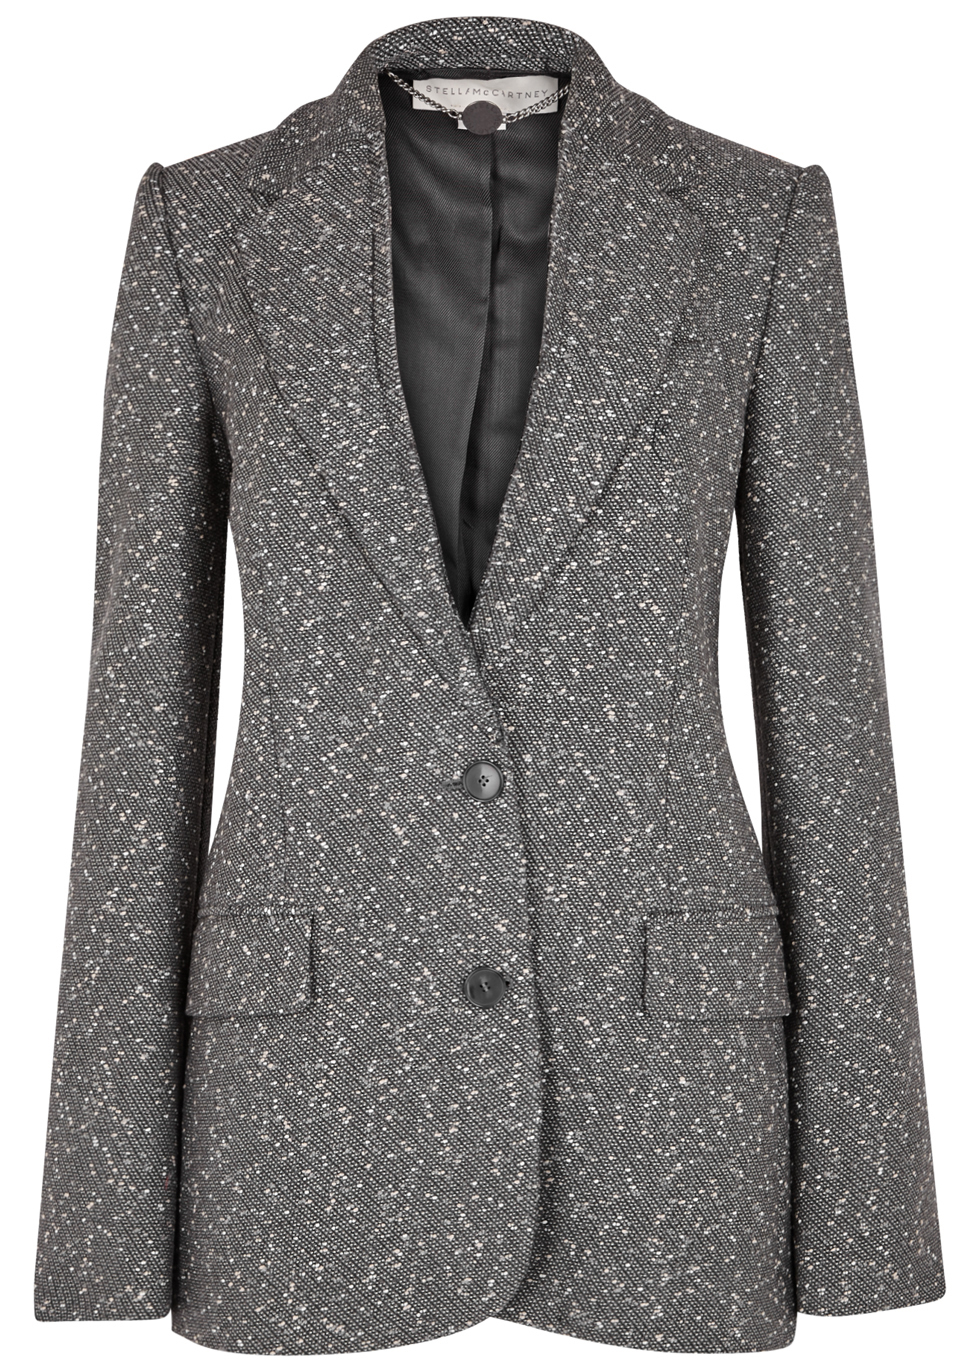 Grey Wool Blend Tweed Blazer - pattern: plain; collar: standard lapel/rever collar; style: baseball; predominant colour: mid grey; occasions: work; length: standard; fit: tailored/fitted; fibres: wool - mix; sleeve length: long sleeve; sleeve style: standard; collar break: medium; pattern type: fabric; texture group: woven bulky/heavy; season: a/w 2016; wardrobe: highlight